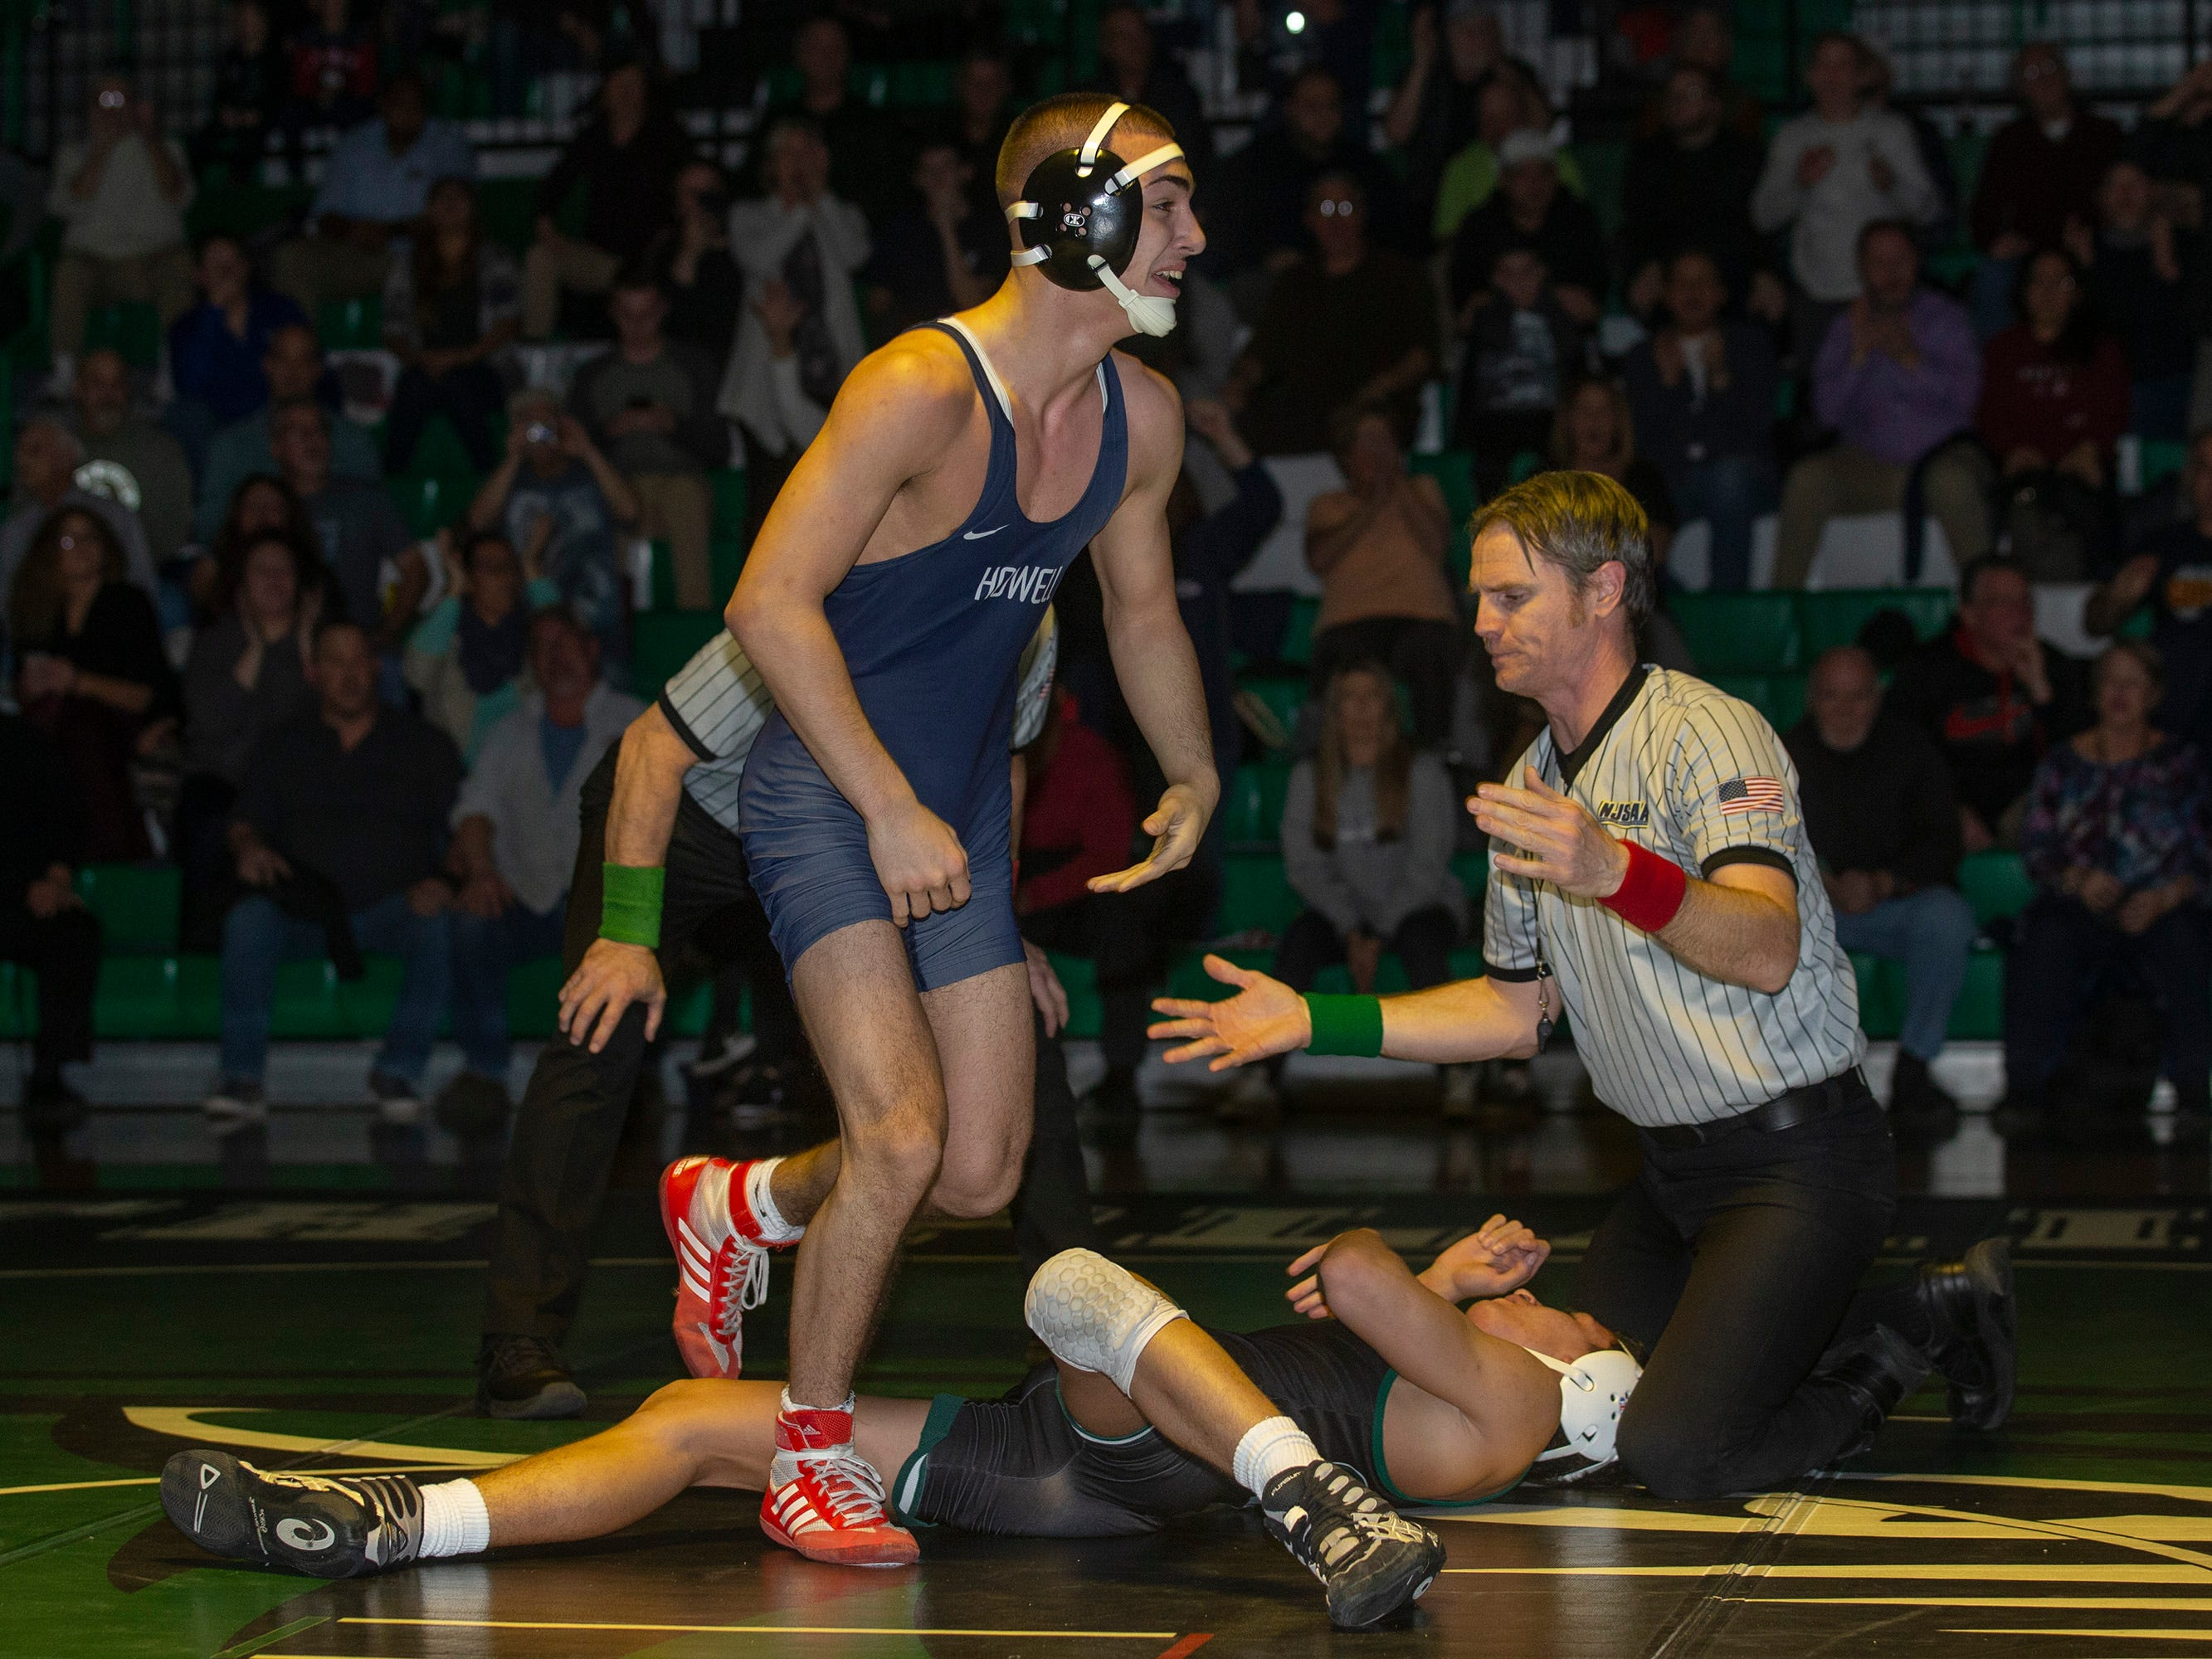 Howell's Nieko Malone pulls off an overtime win against South Plainfield's Thomas Fierro in their 132 lbs. bout. Howell Wrestling edges out South Plainfield in South Plainfield NJ on January 17, 2019.